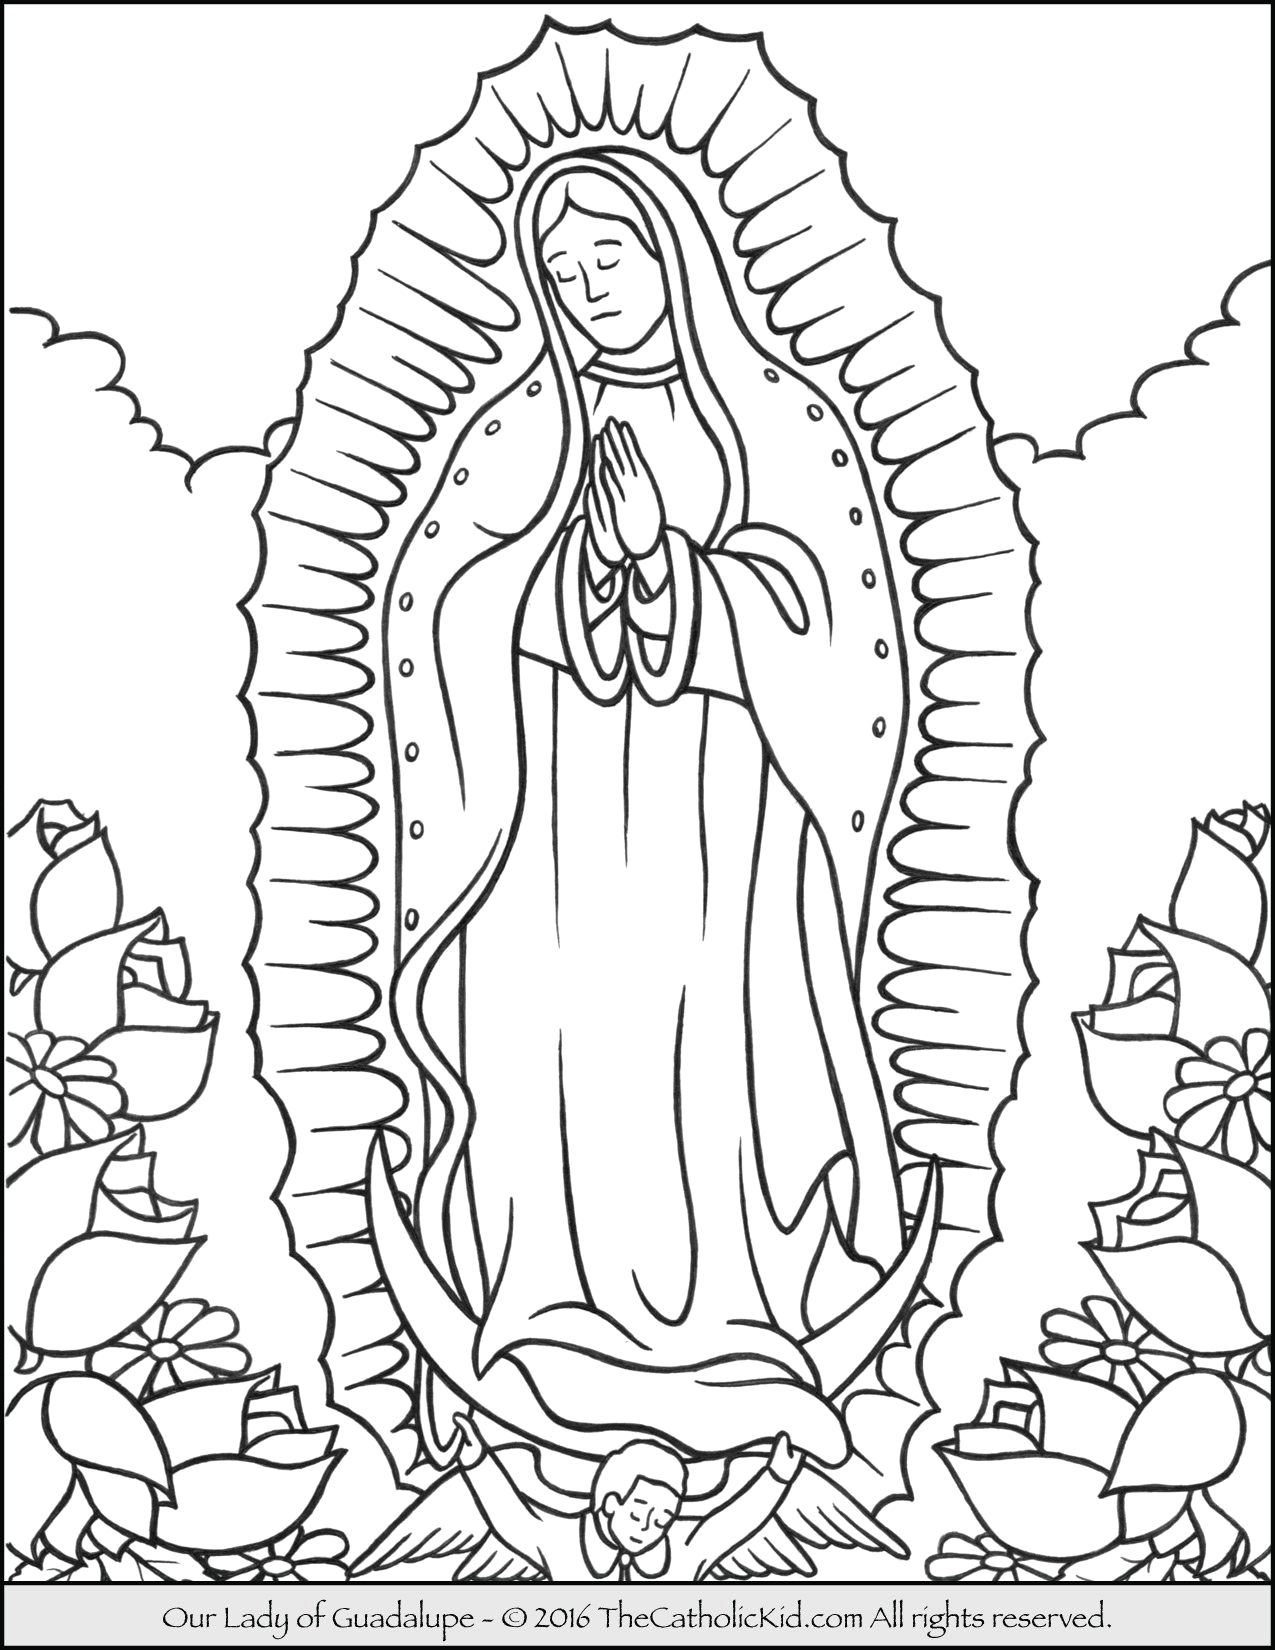 Coloring Pages Of Our Lady Of Guadalupe Our Lady Of Guadalupe Coloring Page thecatholickid